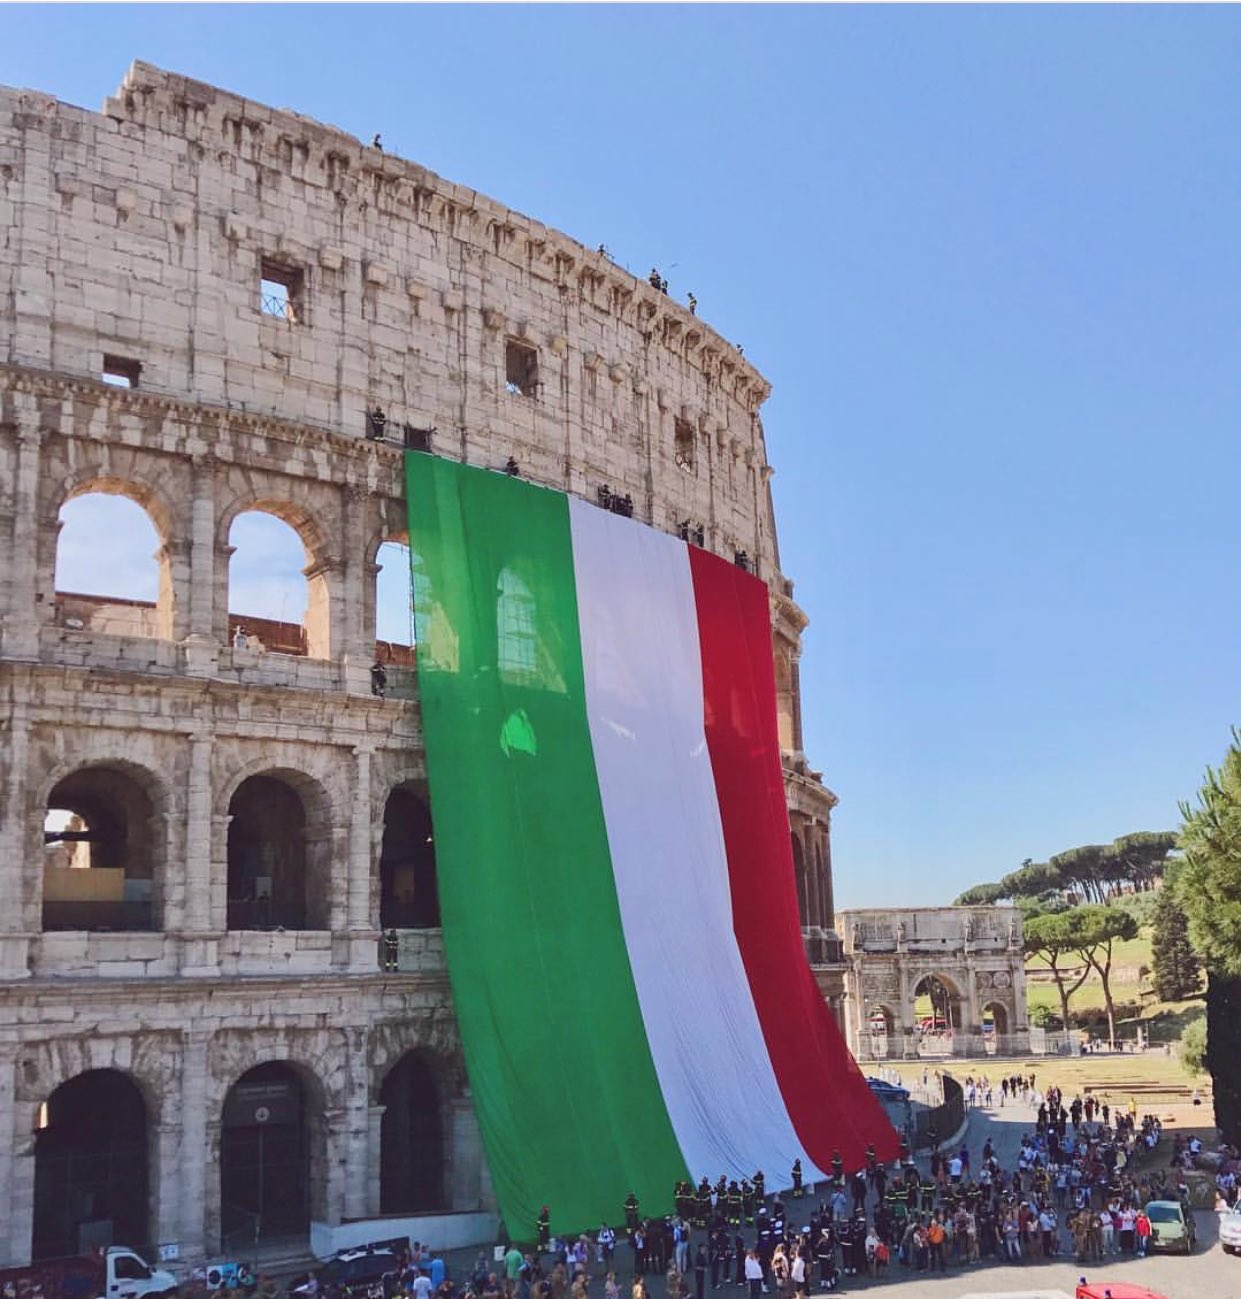 Wow! The #Colosseum with the giant flag @Italia #2giugno (ph. Instagram zimmer07 that_tay_cray scandi.navia vir_di) https://t.co/sWD8QmgZQu